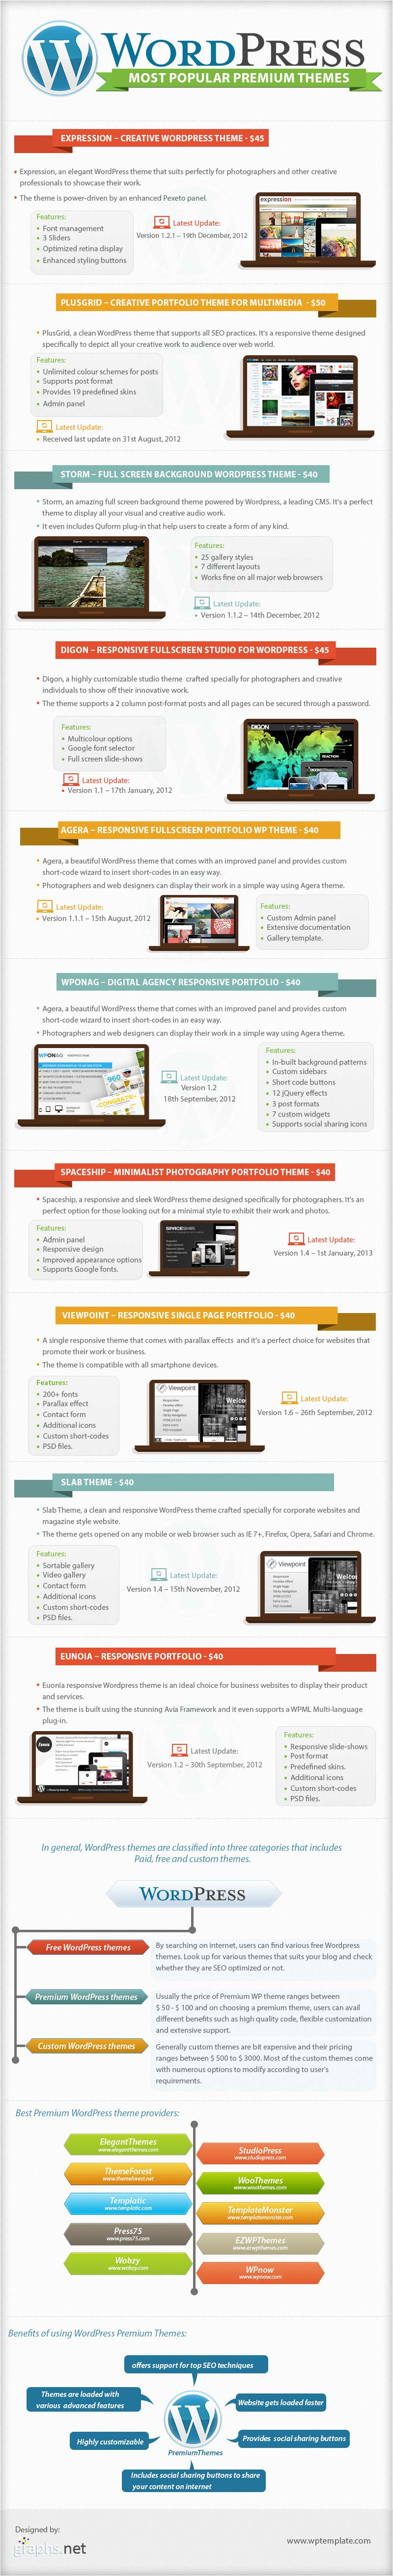 Popular Premium WordPress Themes 2013-Infographic